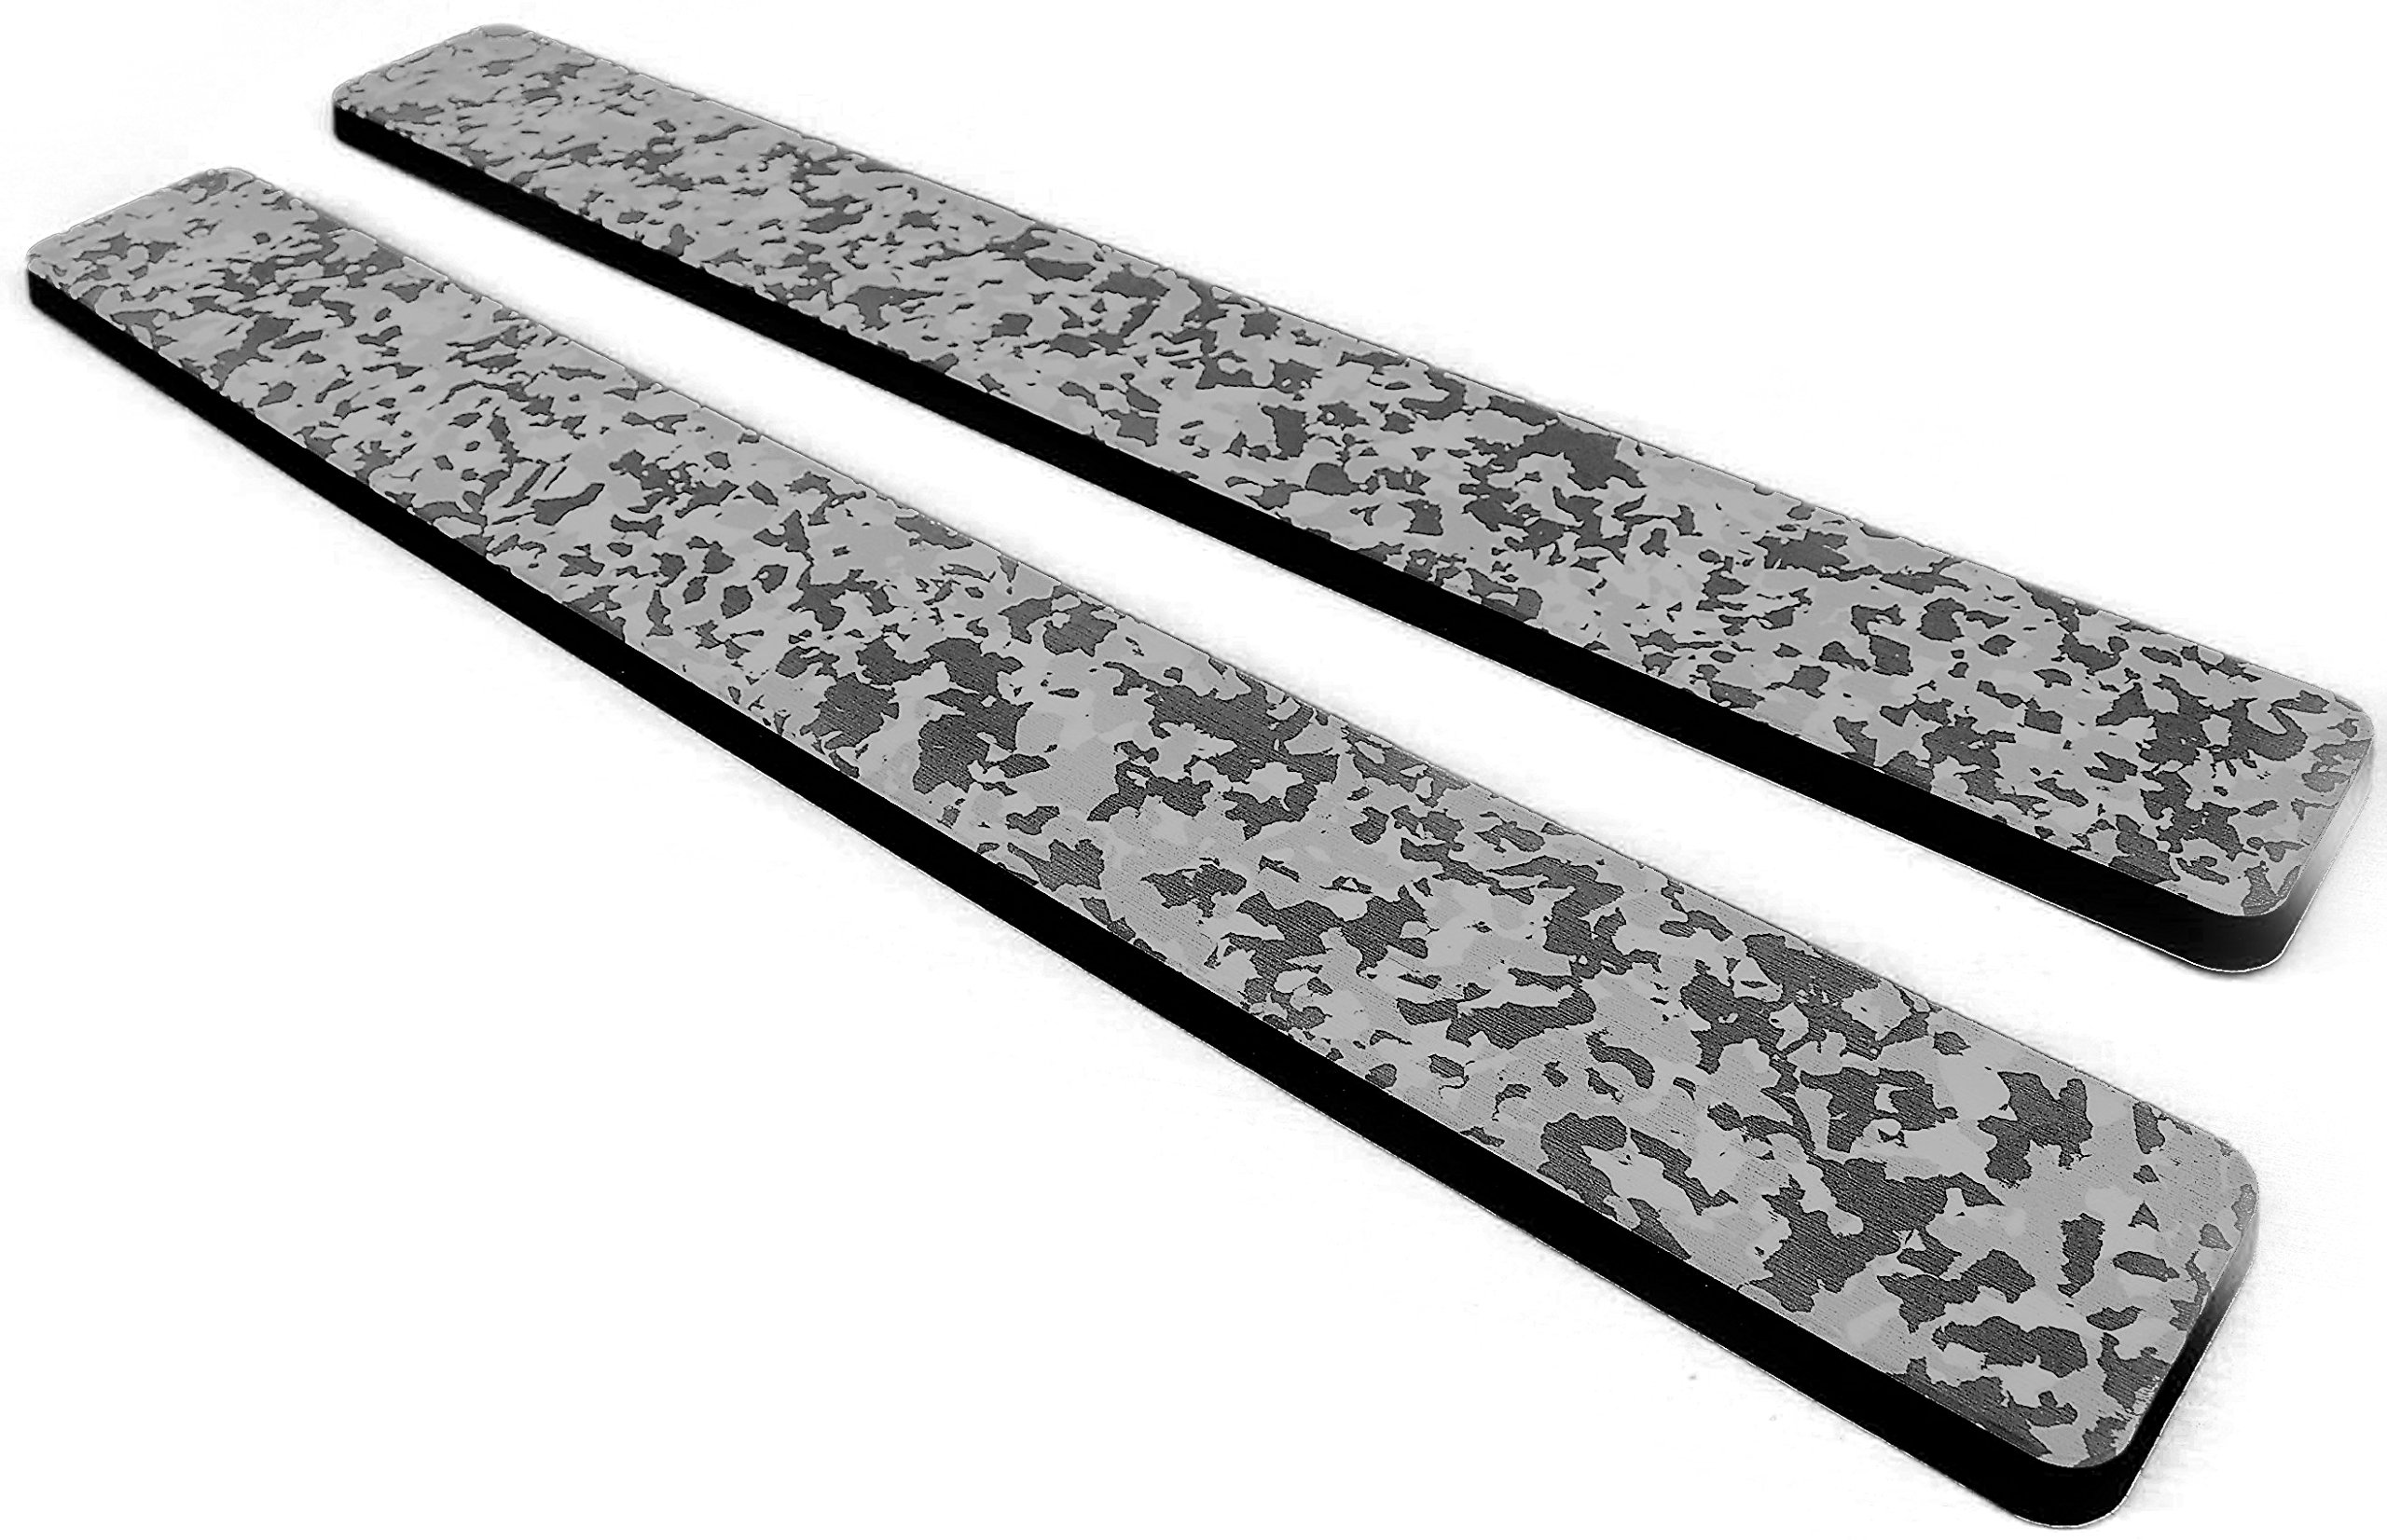 Marine Mat Coaming Bolster Set (21mm Thick) by (Snow Camo Over Black) by Marine Mat